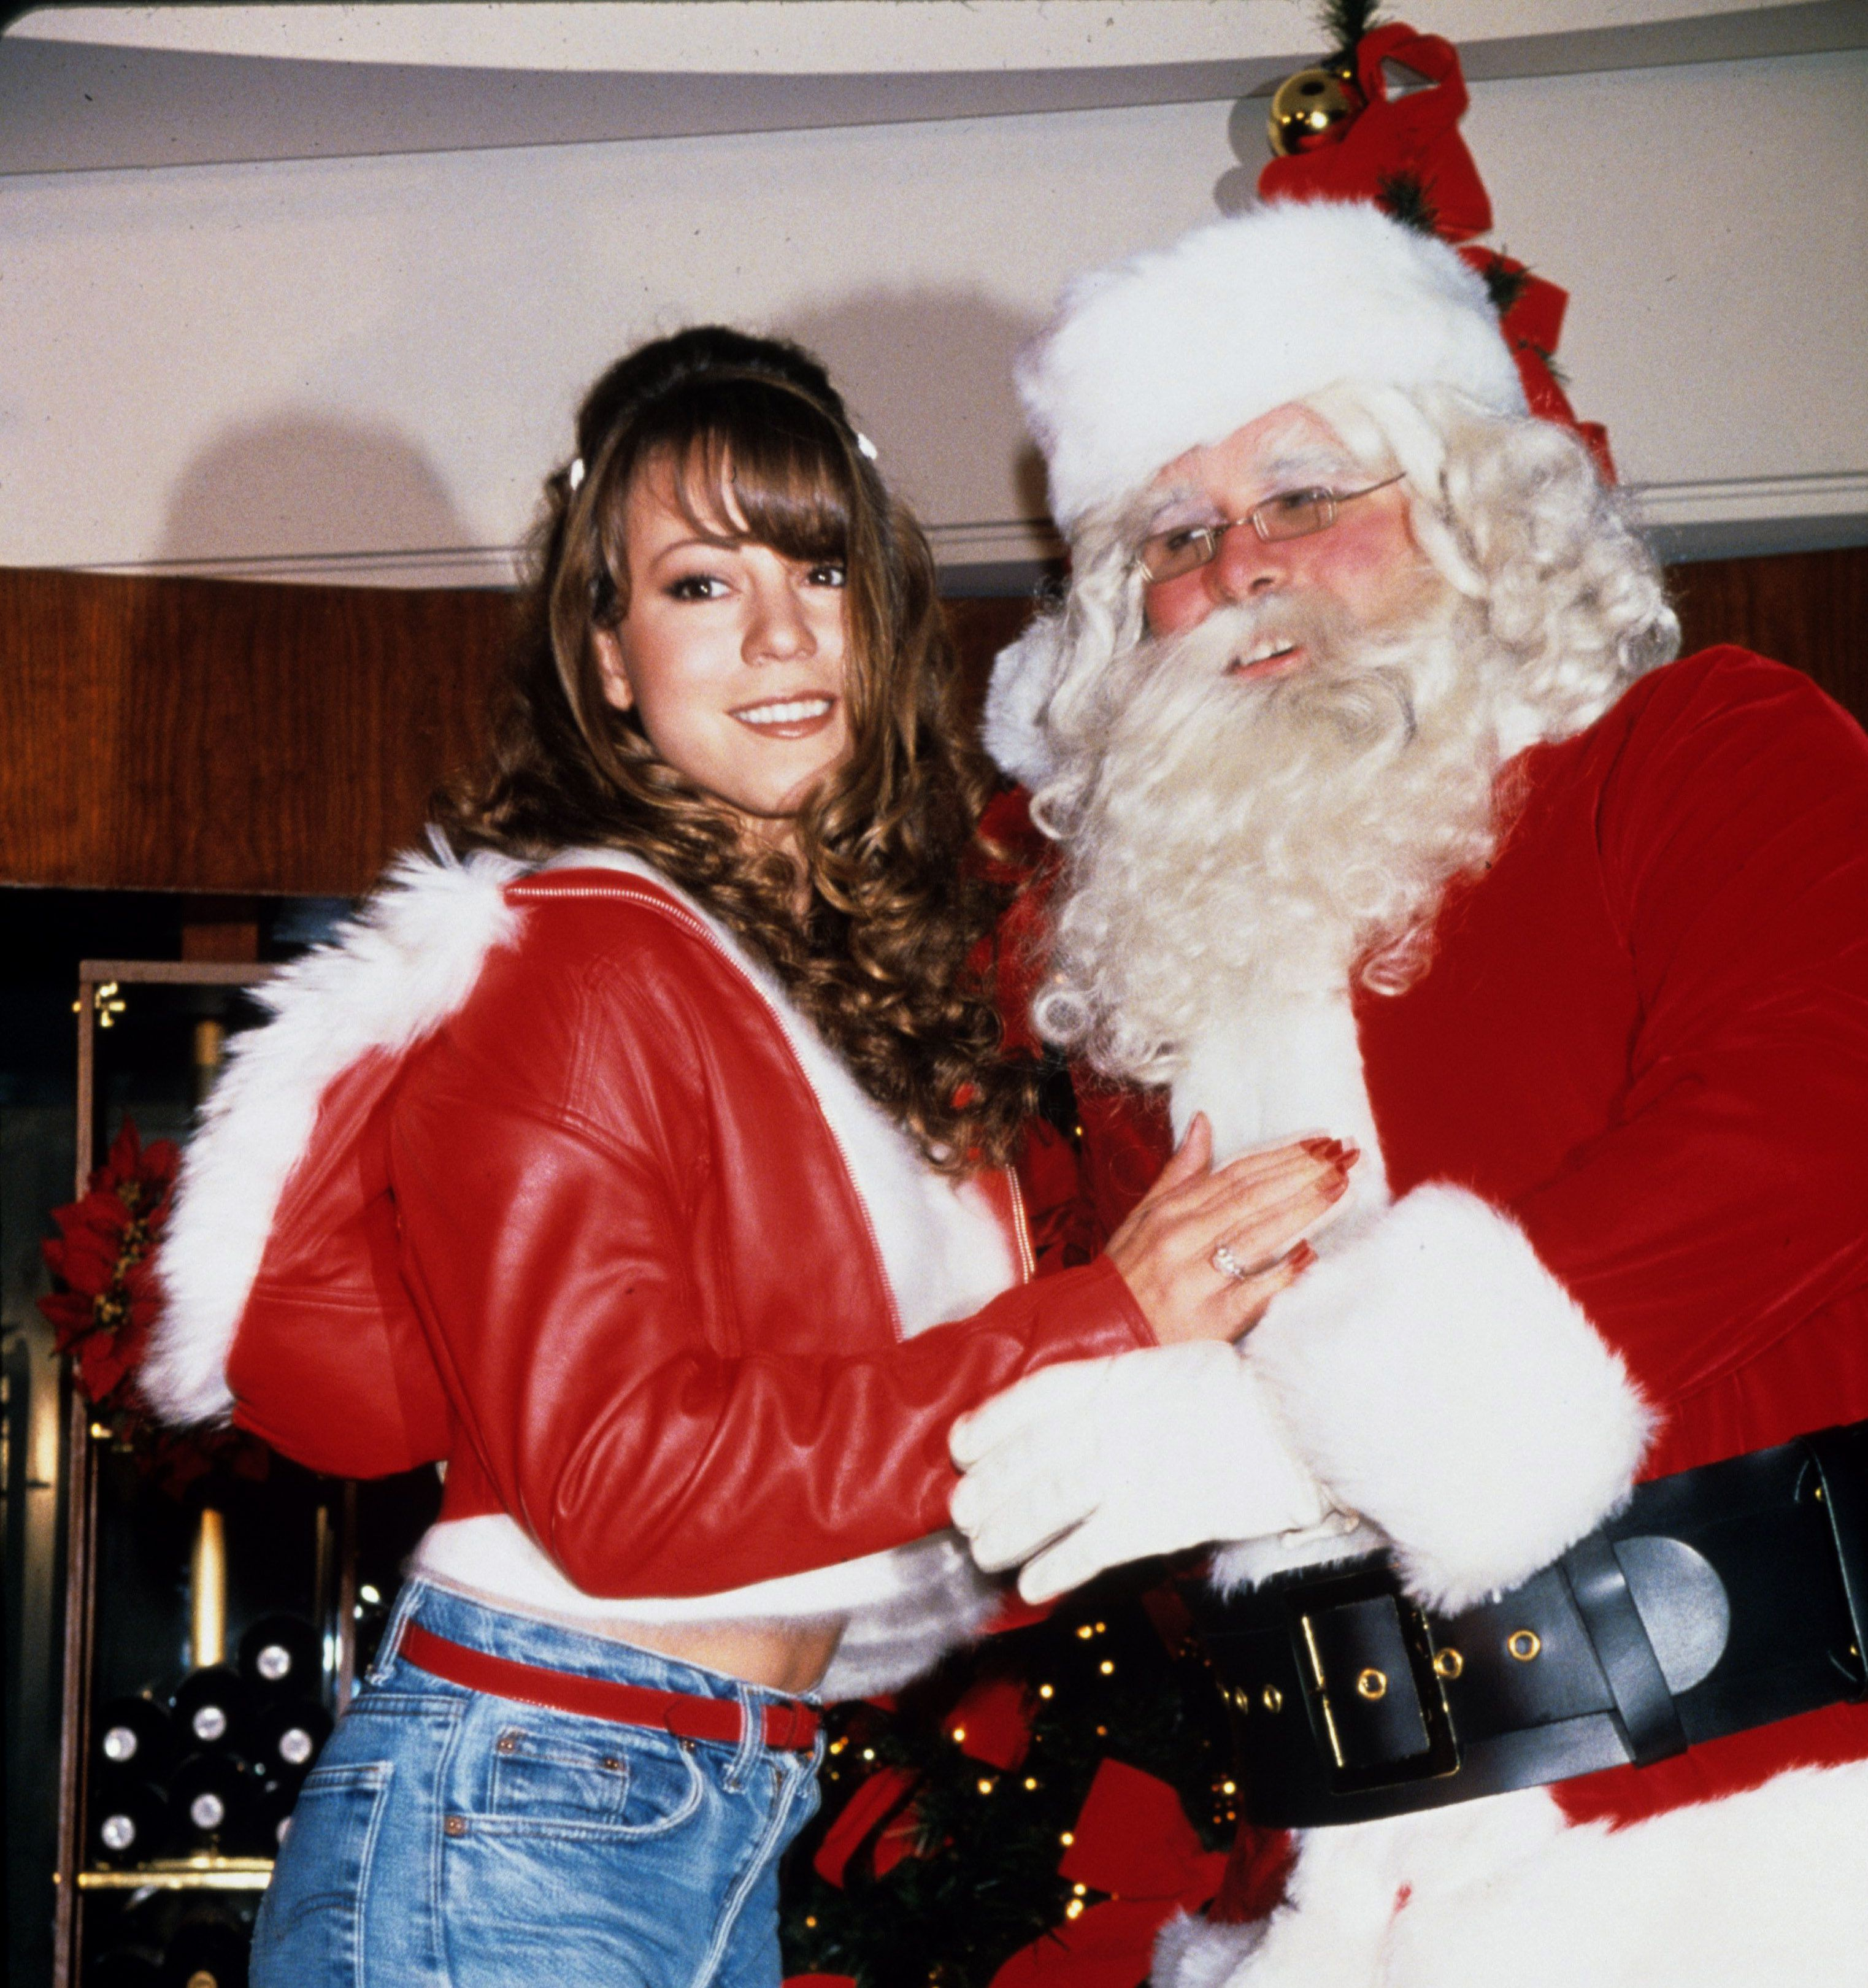 Mariah Carey knocked off the Christmas chart no. 1 spot for first time in 20 years… by The Shins